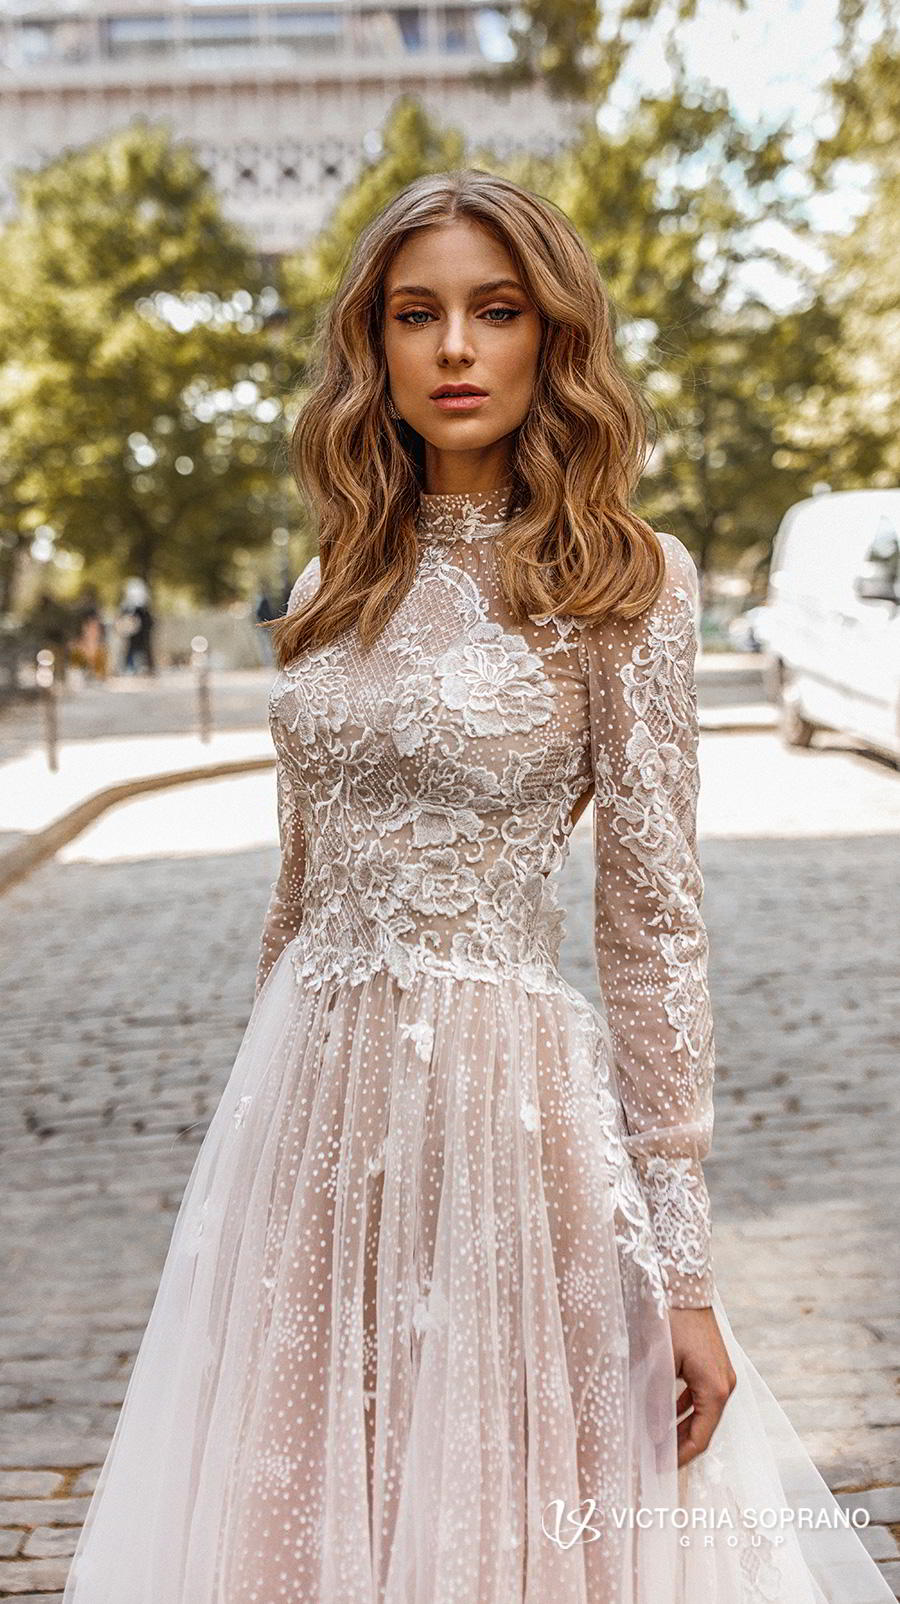 victoria soprano 2019 bridal long sleeves high neck heavily embellished bodice elegant princess a line wedding dress open low back chapel train (dior) zv